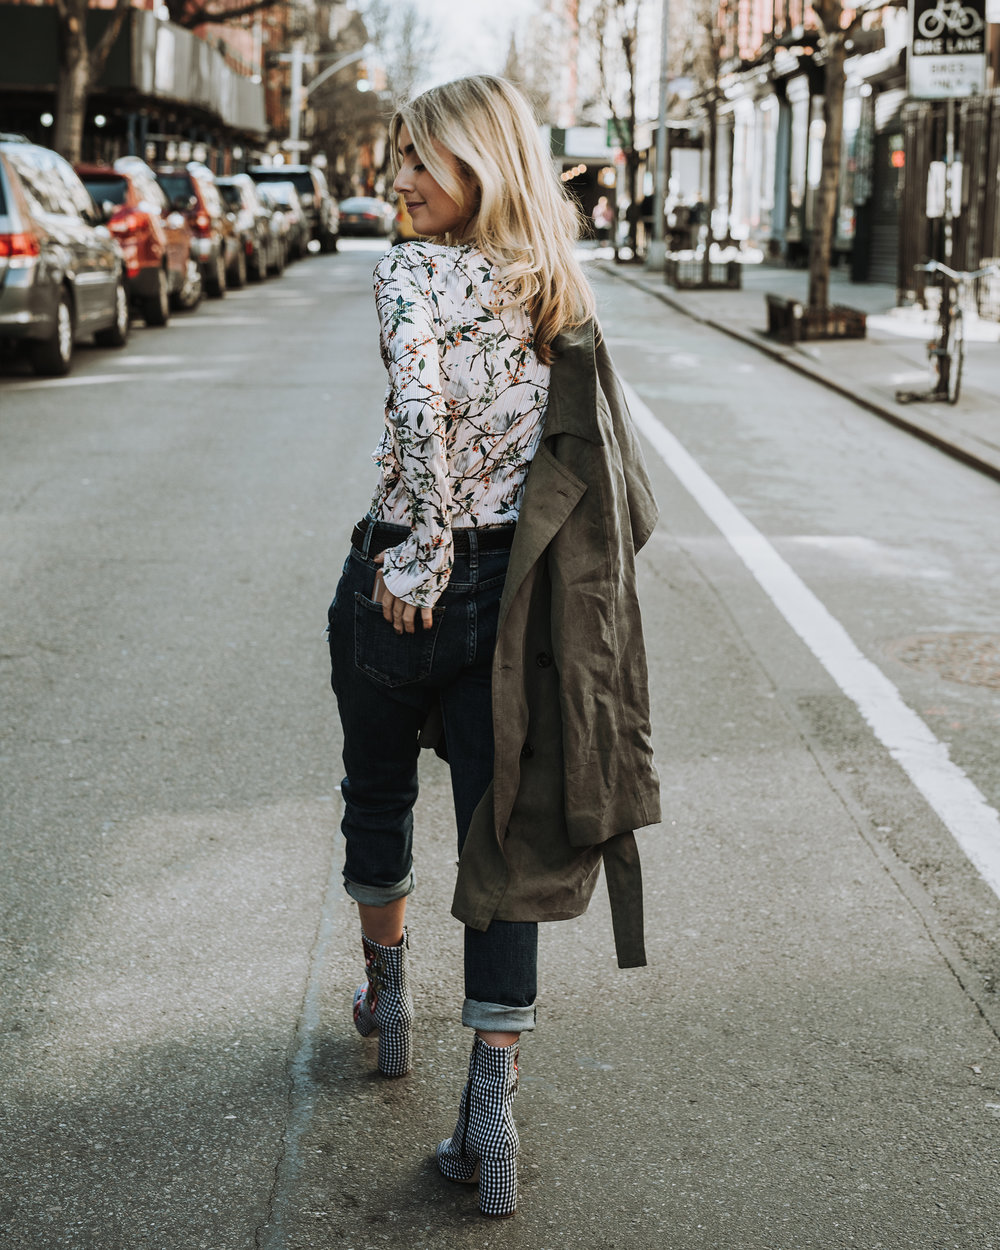 CHARLOTTE BICKLEY YIN 2MY YANG SISTER FASHION BLOGGERS TOPSHOP DENIM POST